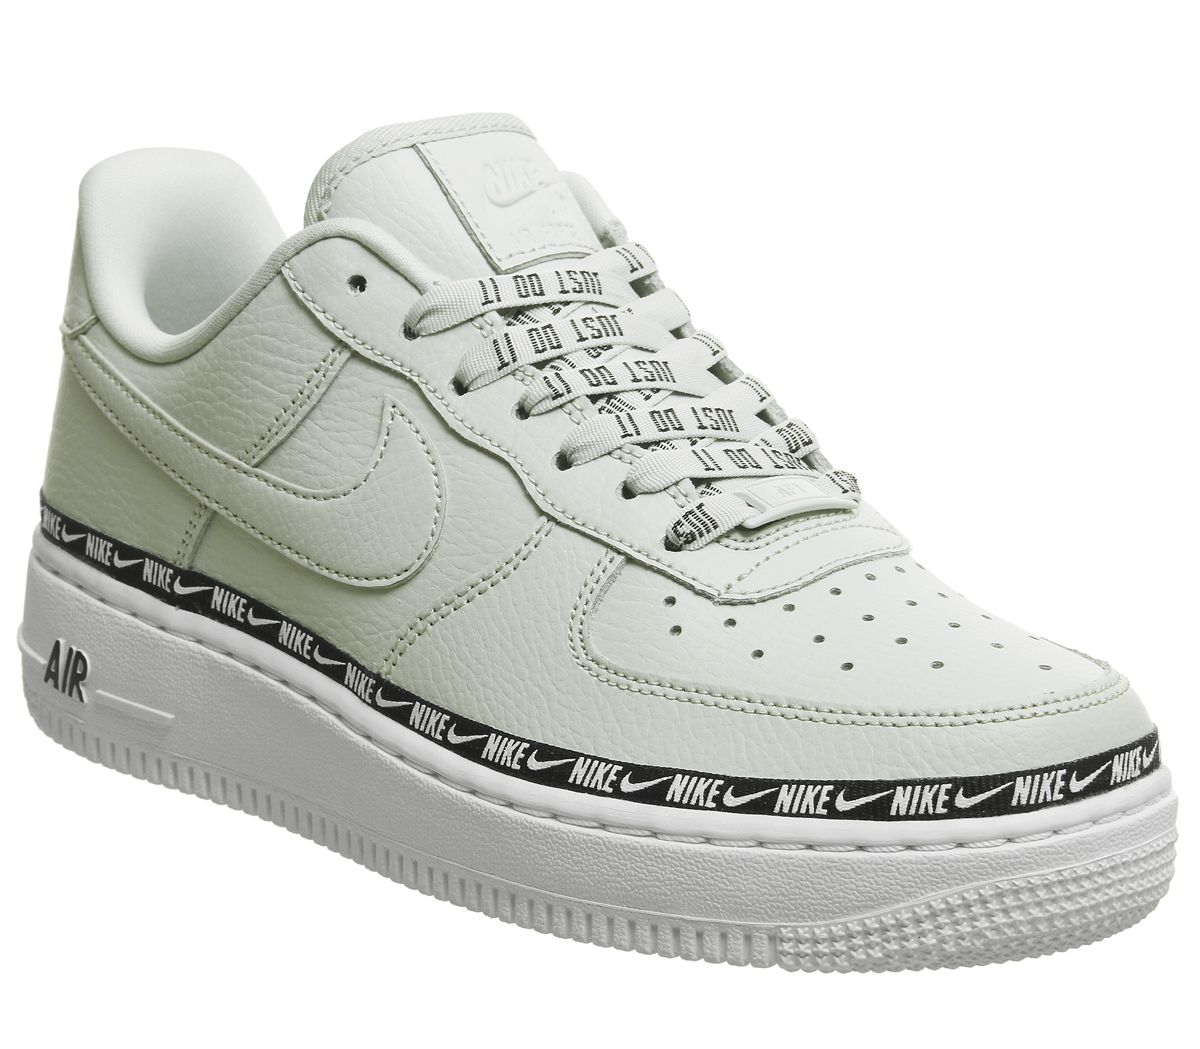 923c36cc313ec Nike Air Force 1 07 Trainers Light Silver Black White F - Hers trainers